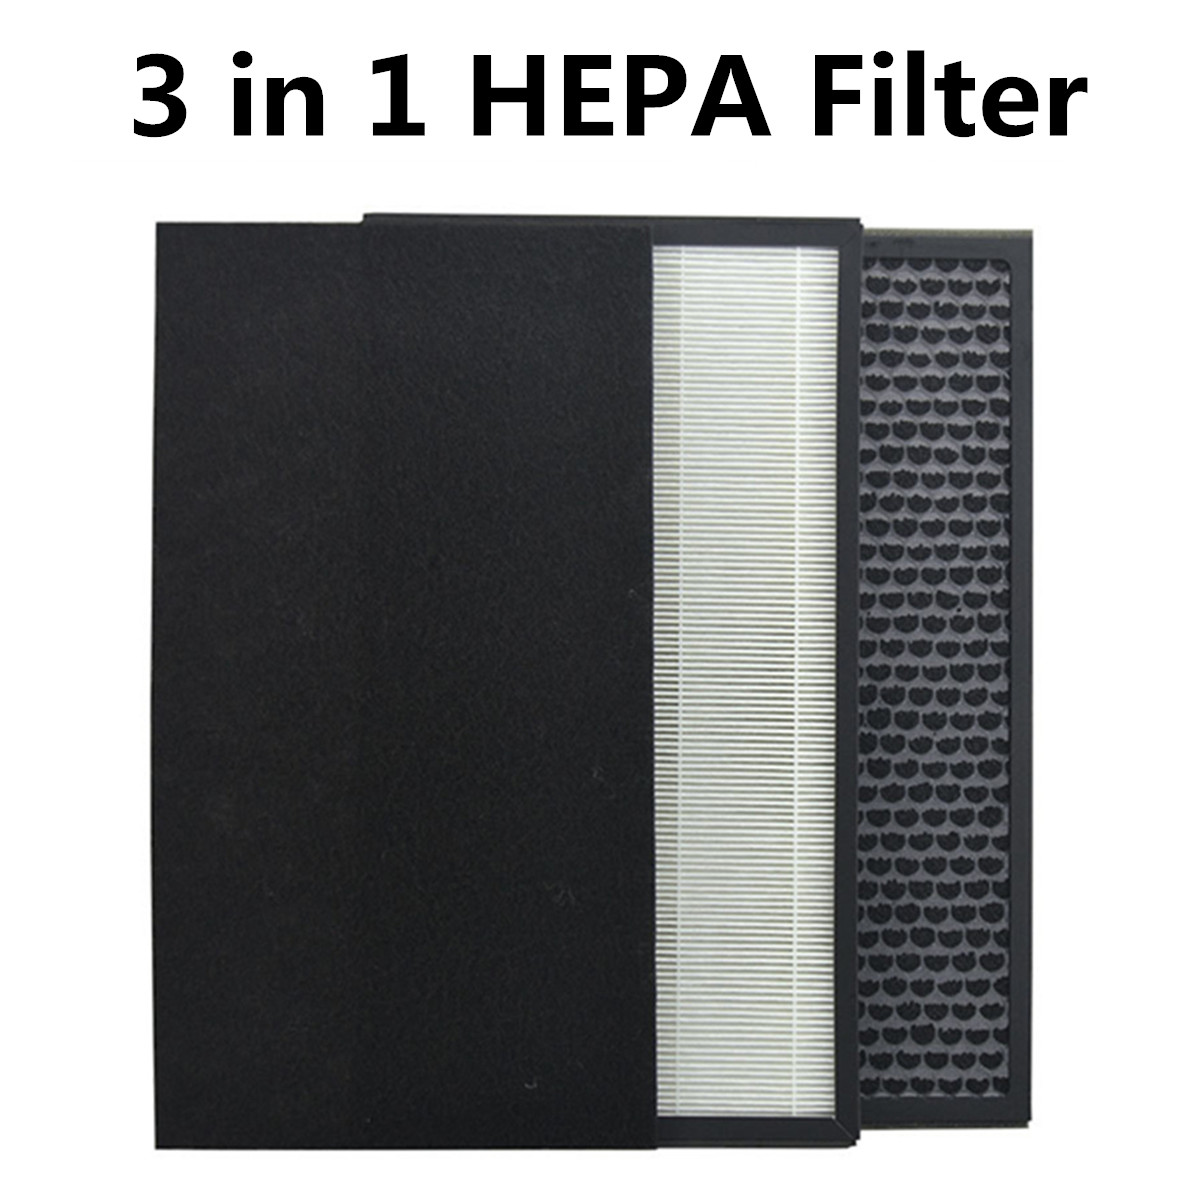 Activated Carbon filter 3 in 1 Air Purifier Compound Filter with HEPA filter Primary filter cottonActivated Carbon filter 3 in 1 Air Purifier Compound Filter with HEPA filter Primary filter cotton